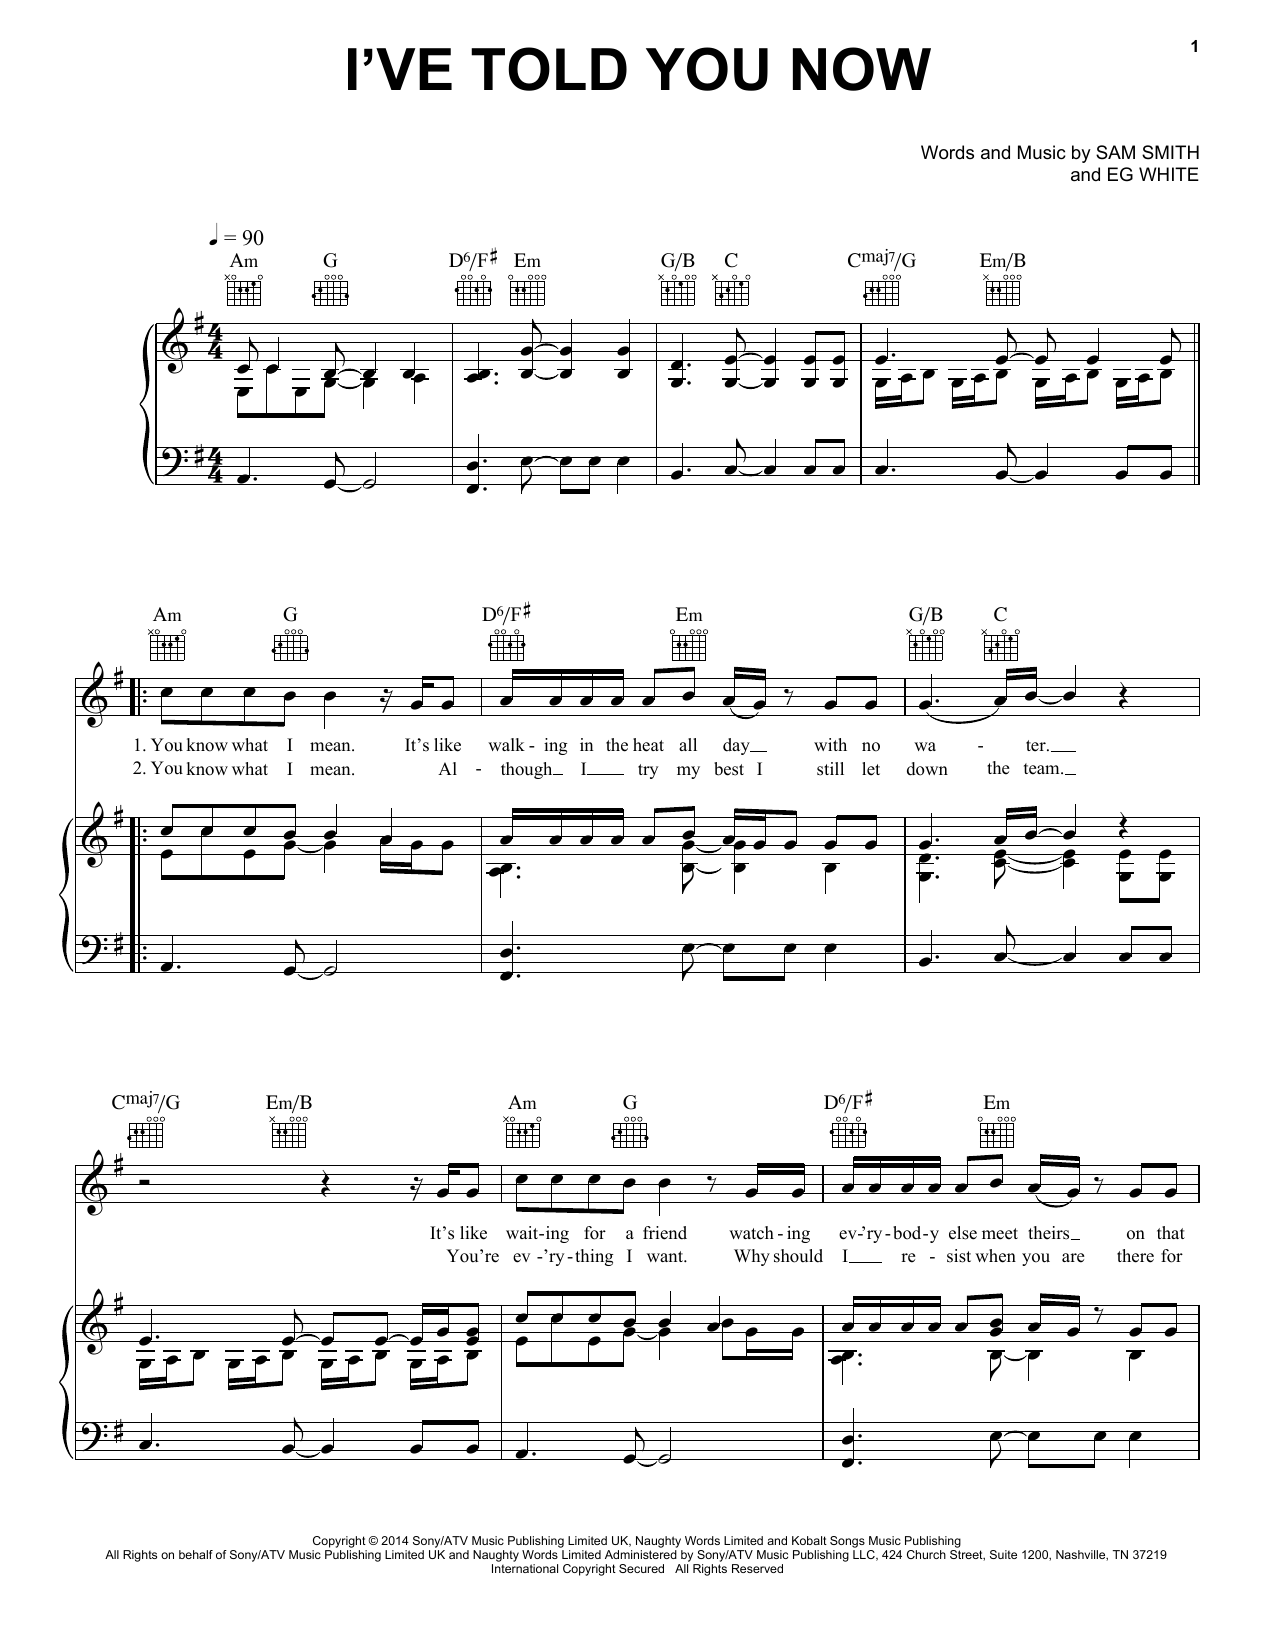 Sam Smith I've Told You Now sheet music notes and chords. Download Printable PDF.